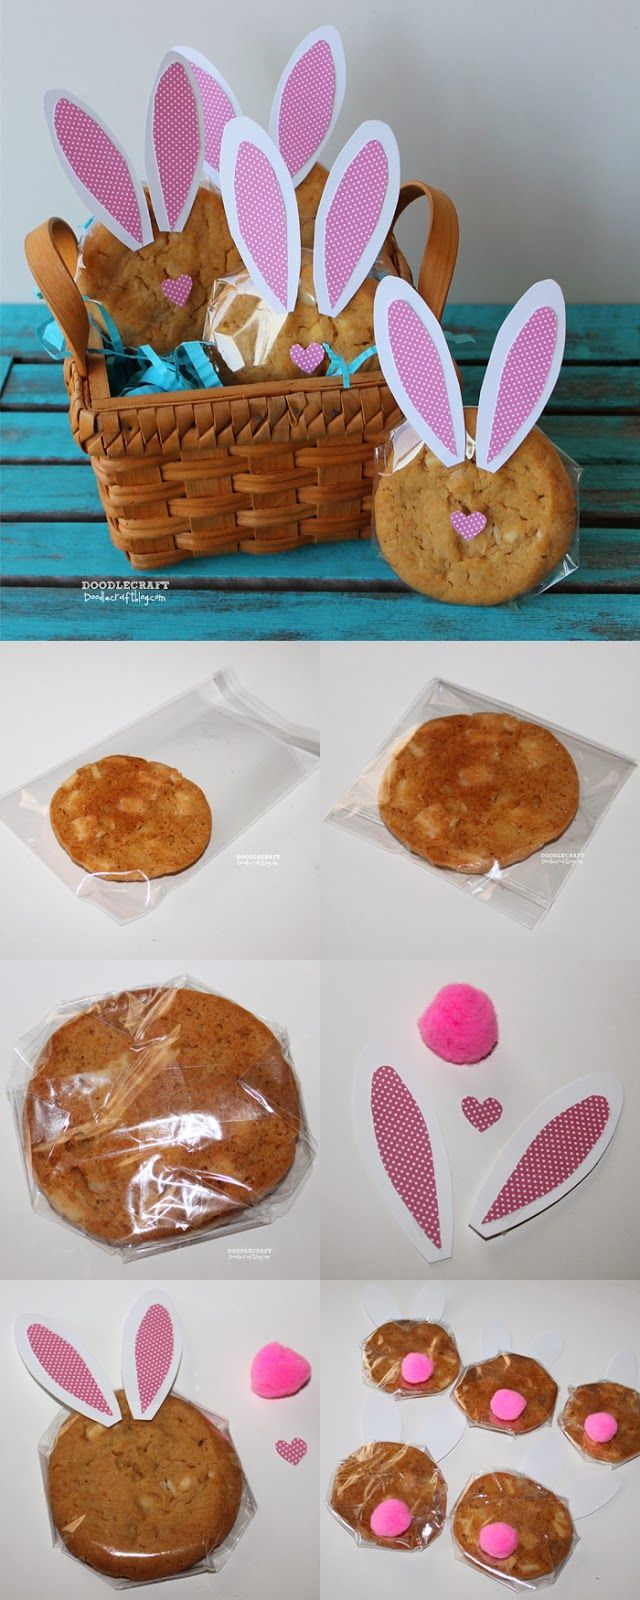 51 best easter sunday lunch images on pinterest candies easter cookies bunny ear cutouts a basket cellophane and a fuzzy tail and youre all set for easter thanks doodlecraft negle Images